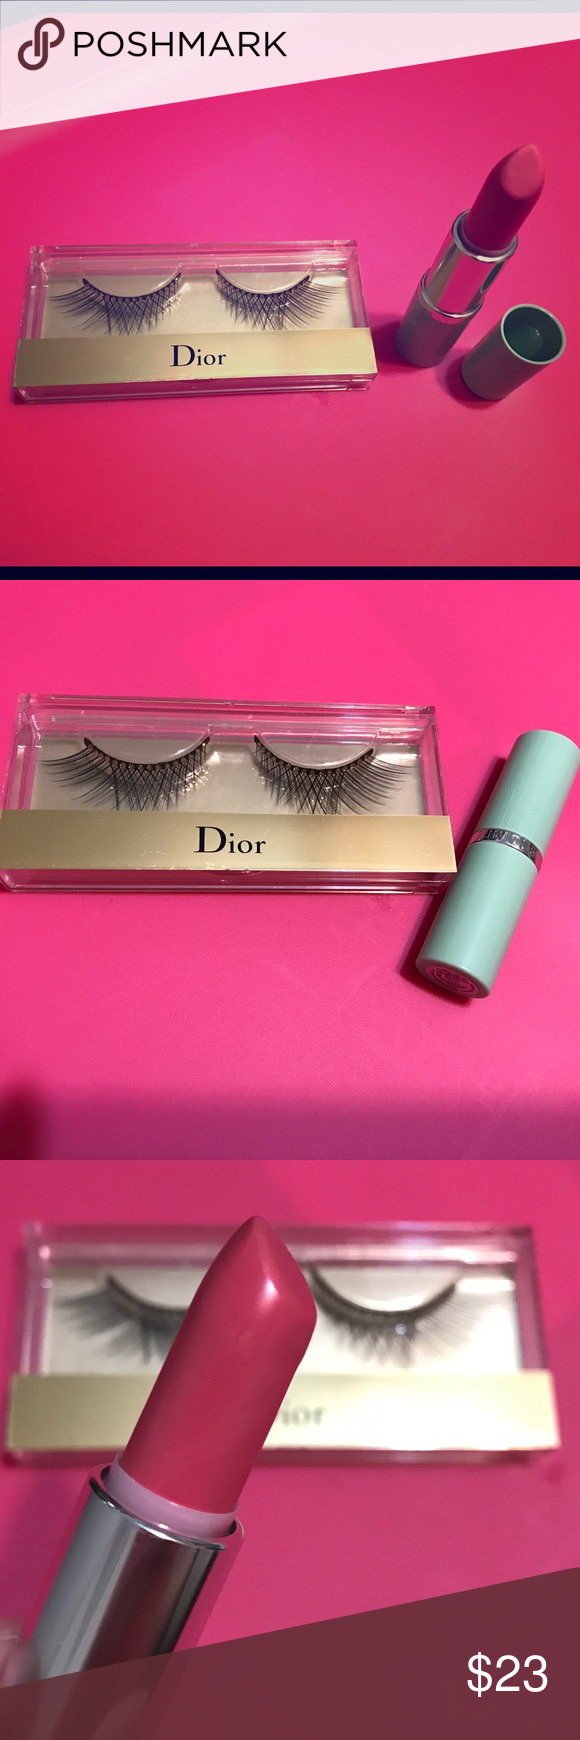 Clinique Matte Petal Lipstick&Dior False Eyelashes Both new, never used.  Lipstick is color matte petal. Has a scratch on it somehow. See picture 3.   False eyelashes have Swarovski crystals on them and box comes with glue. Clinique Makeup False Eyelashes